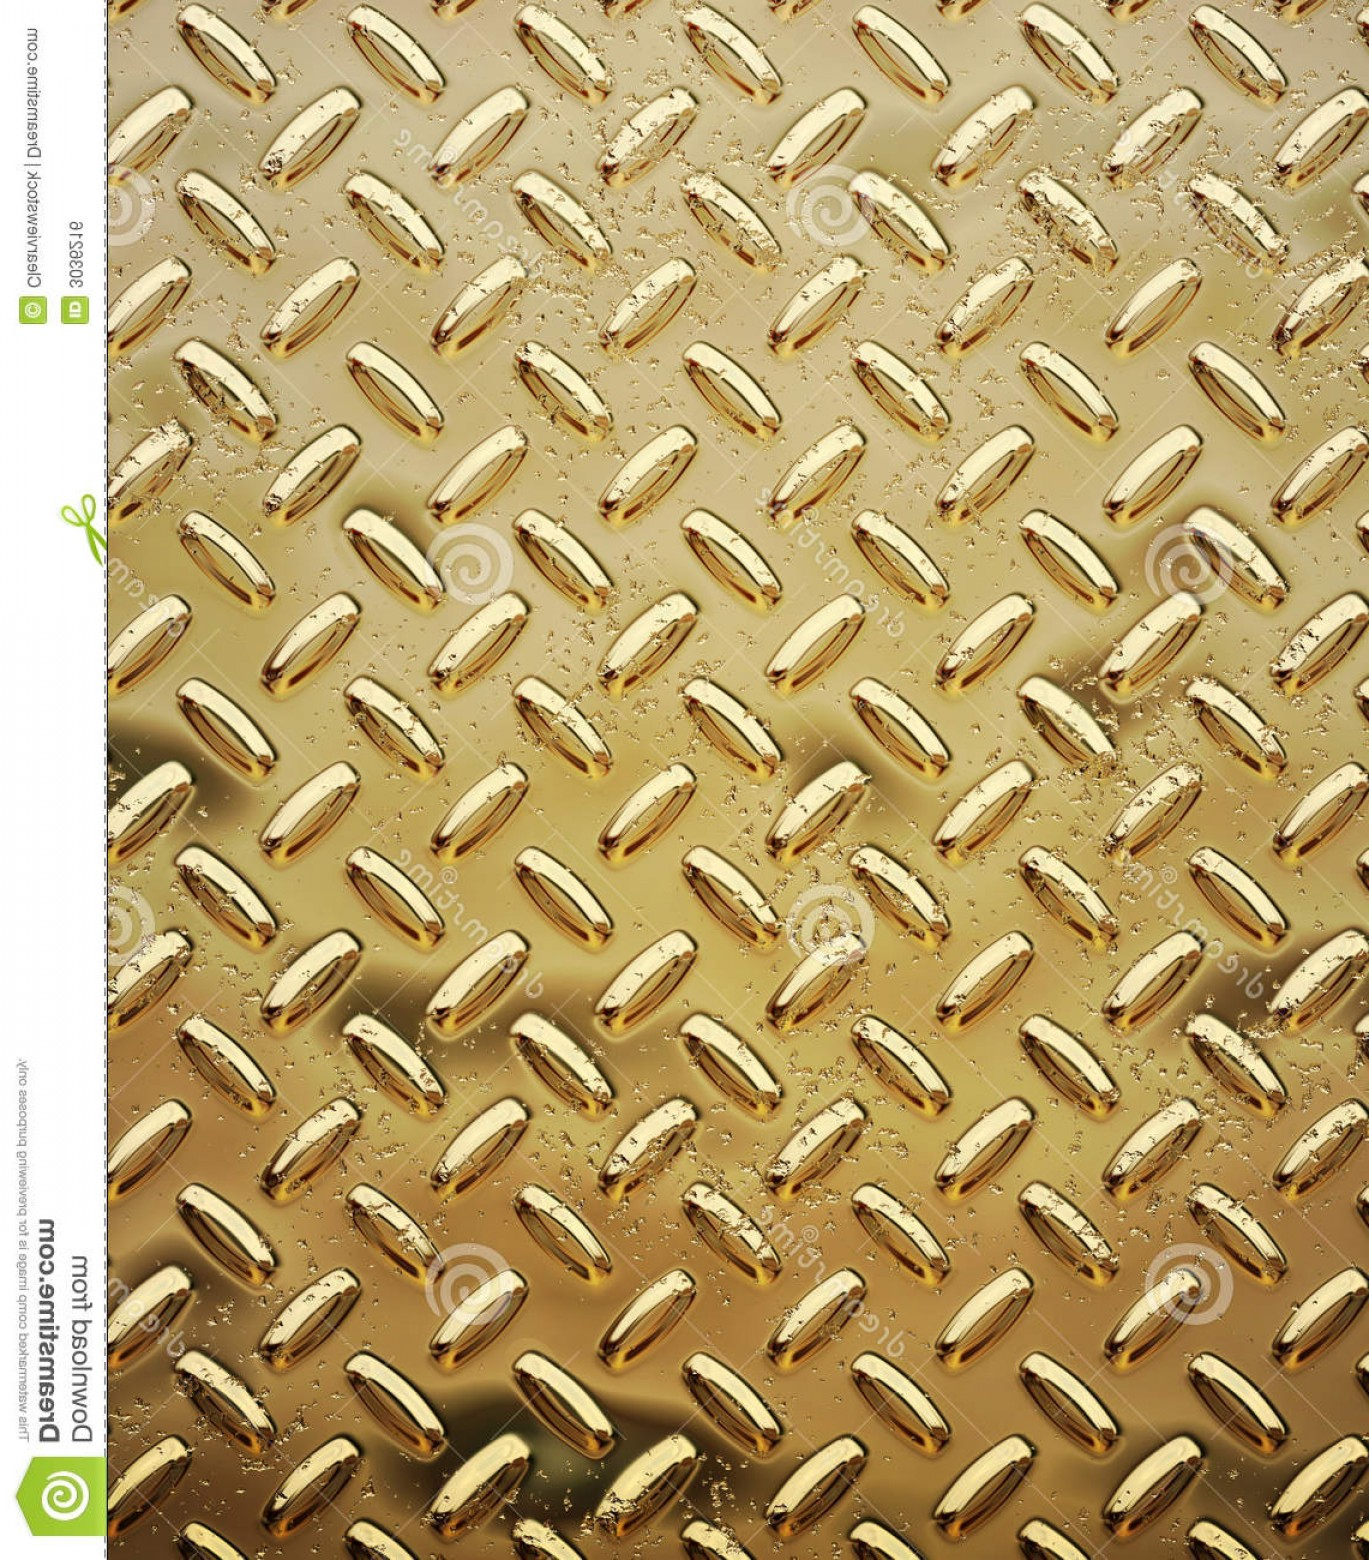 Tread Plate Vector: Royalty Free Stock Image Rough Gold Diamond Plate Image